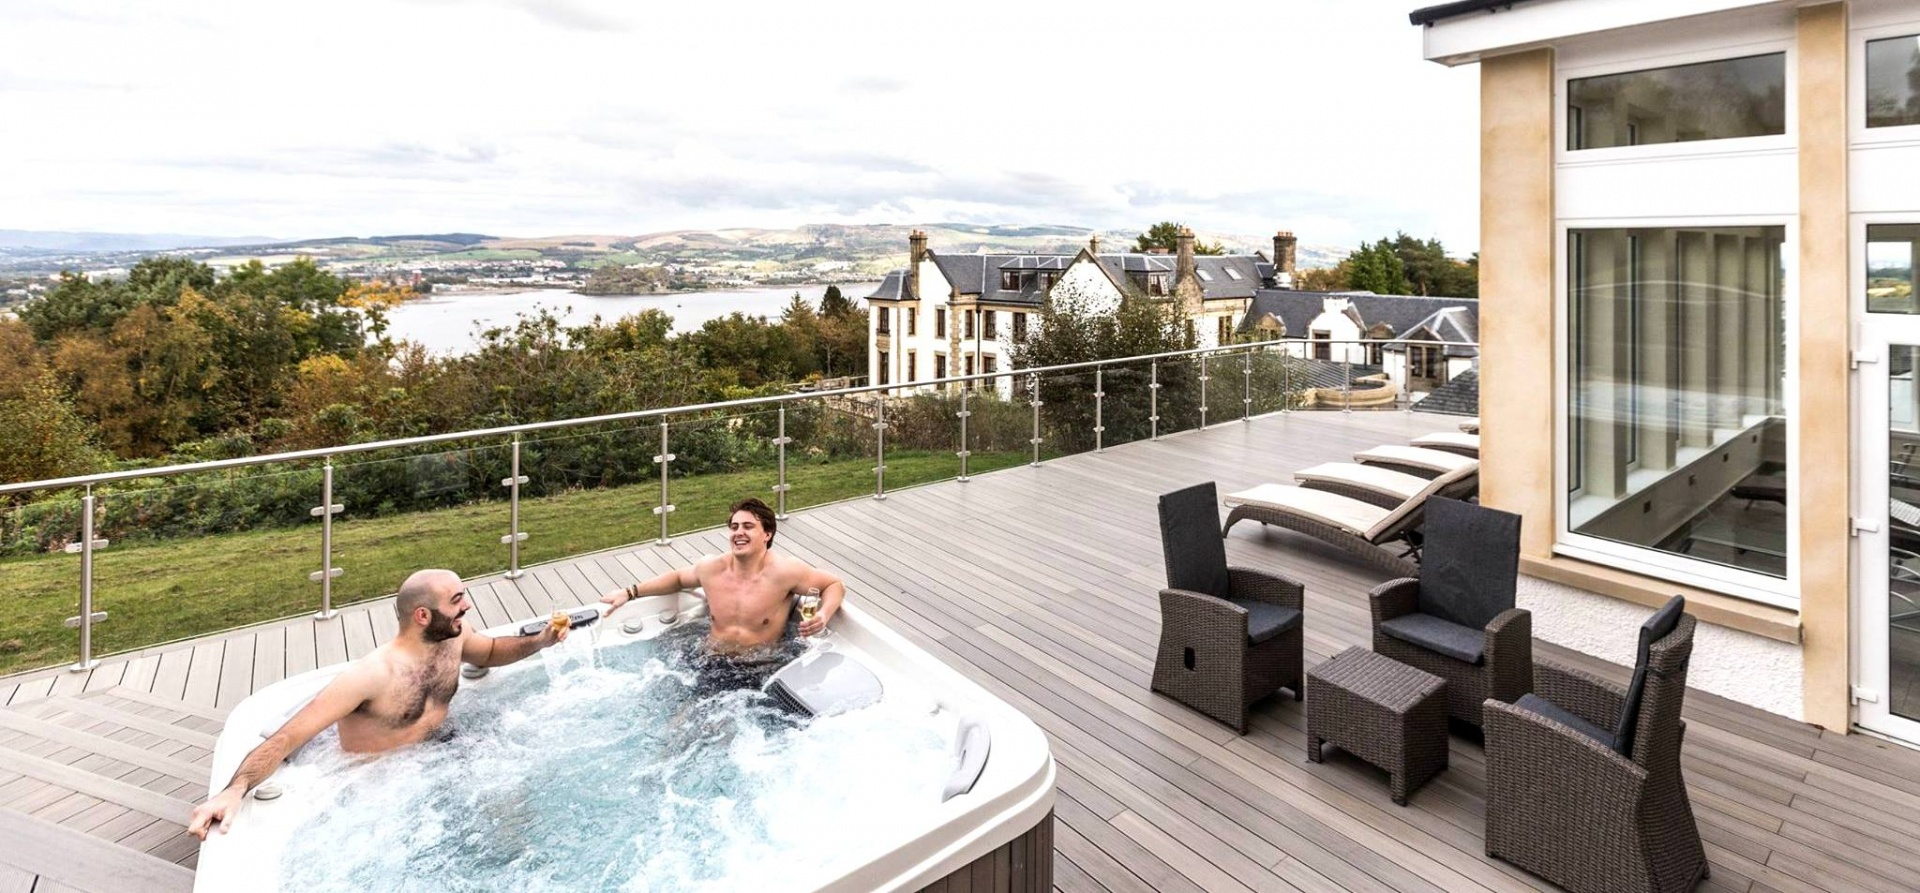 Indulging Full Day Deluxe Spa Experience in Glasgow-15